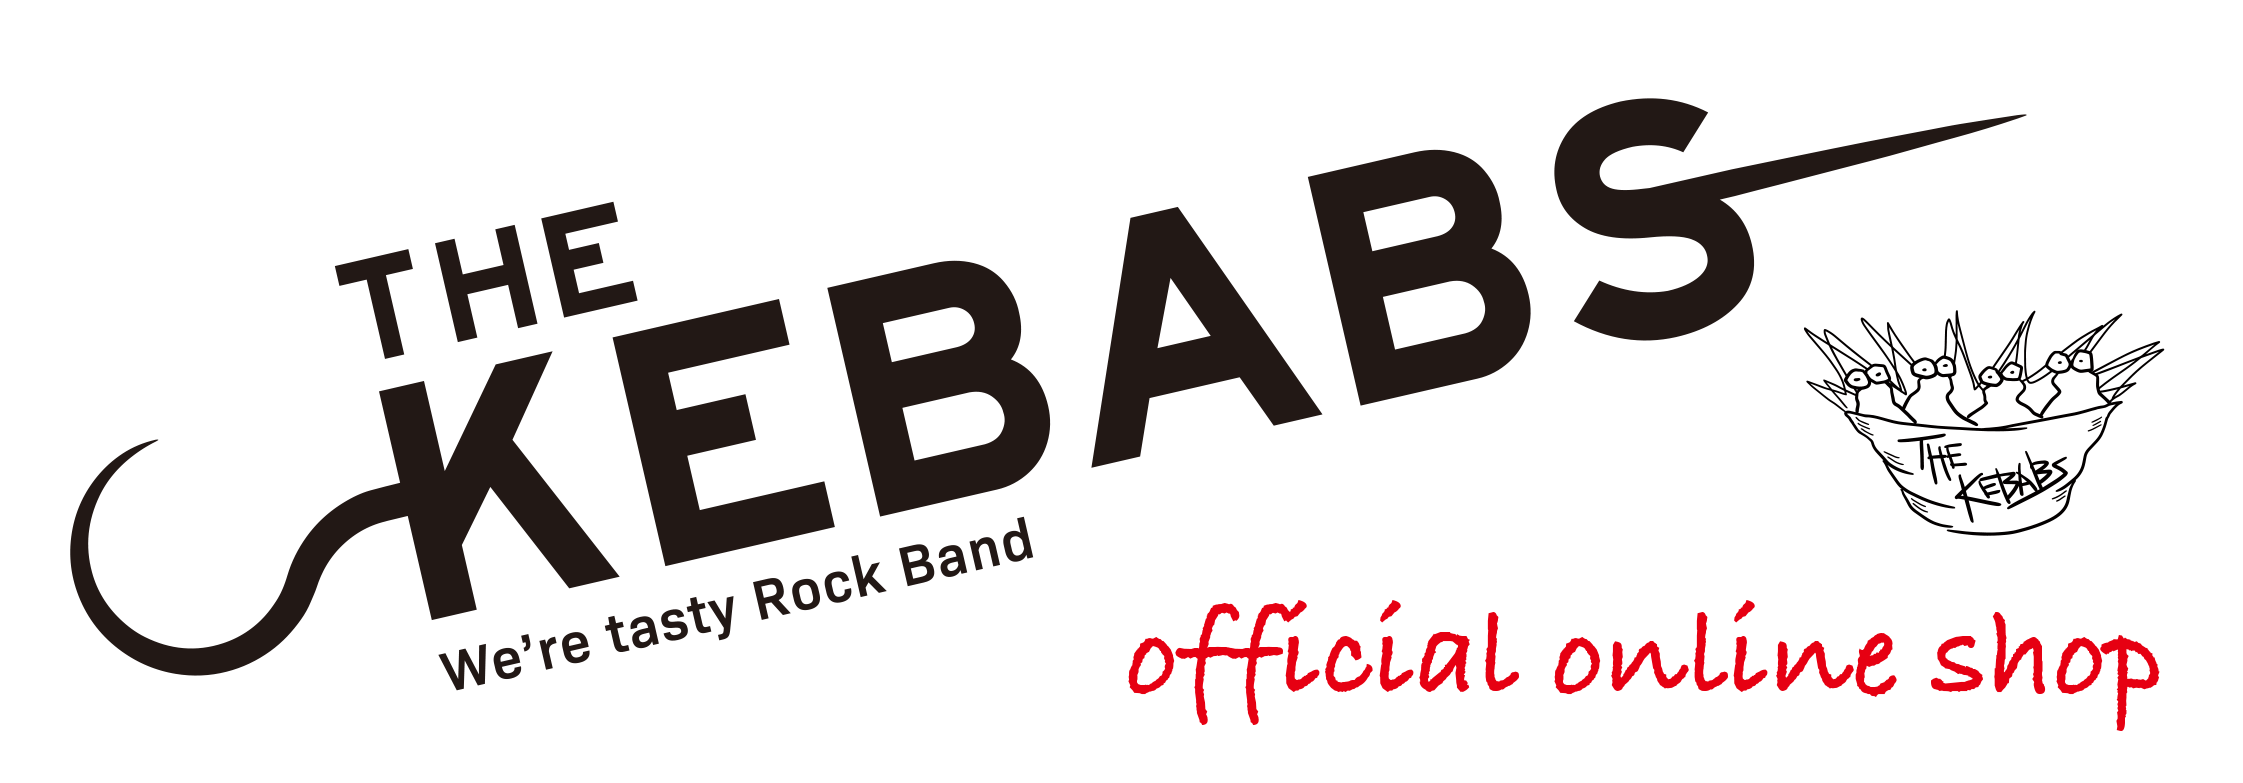 THE KEBABS official online shop